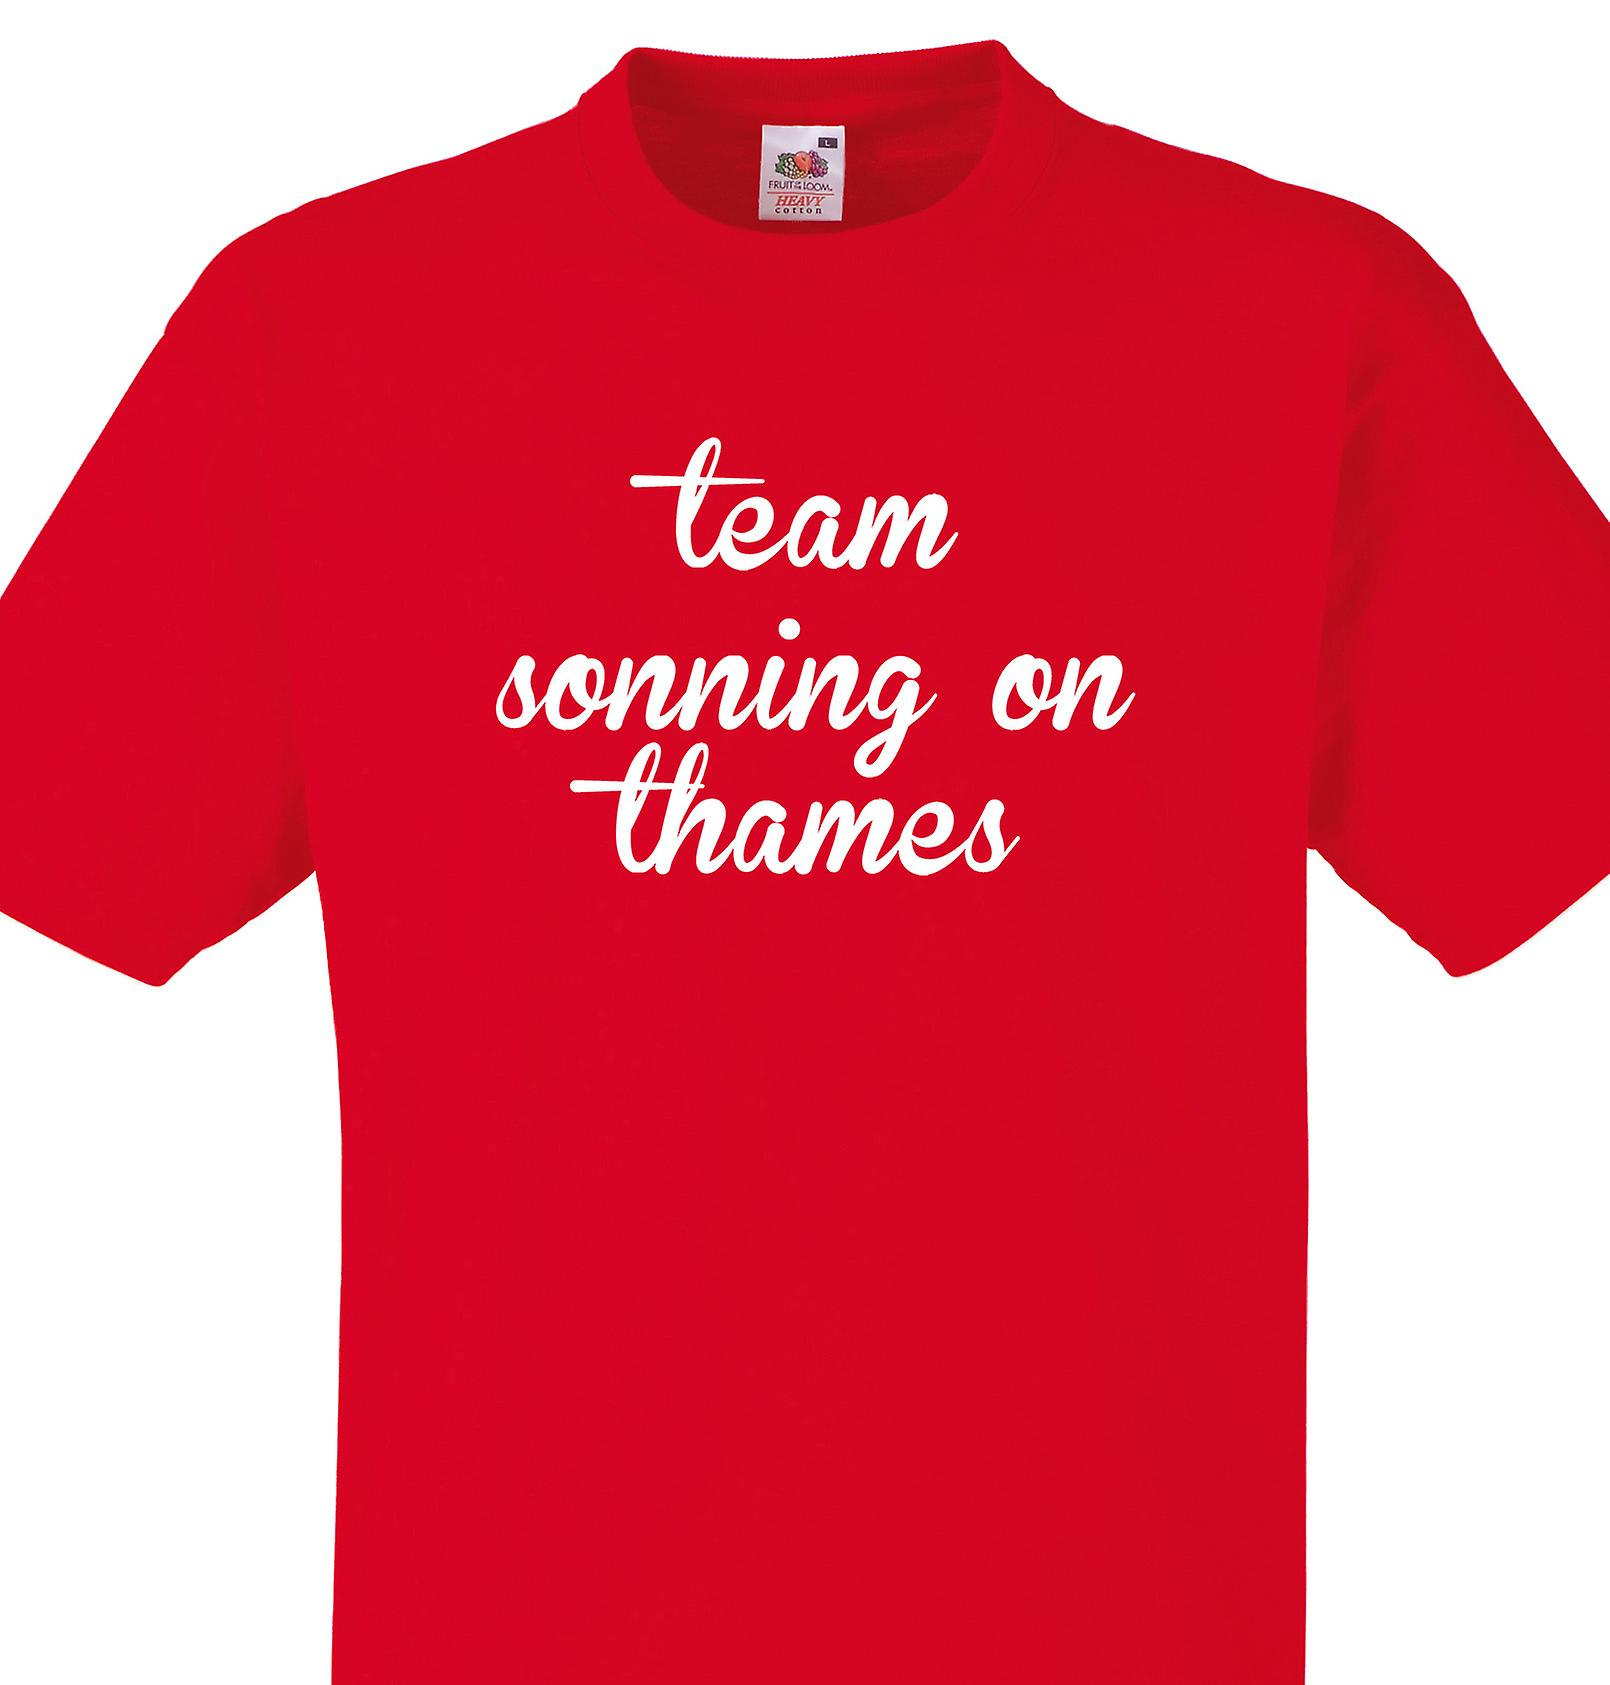 Team Sonning on thames Red T shirt